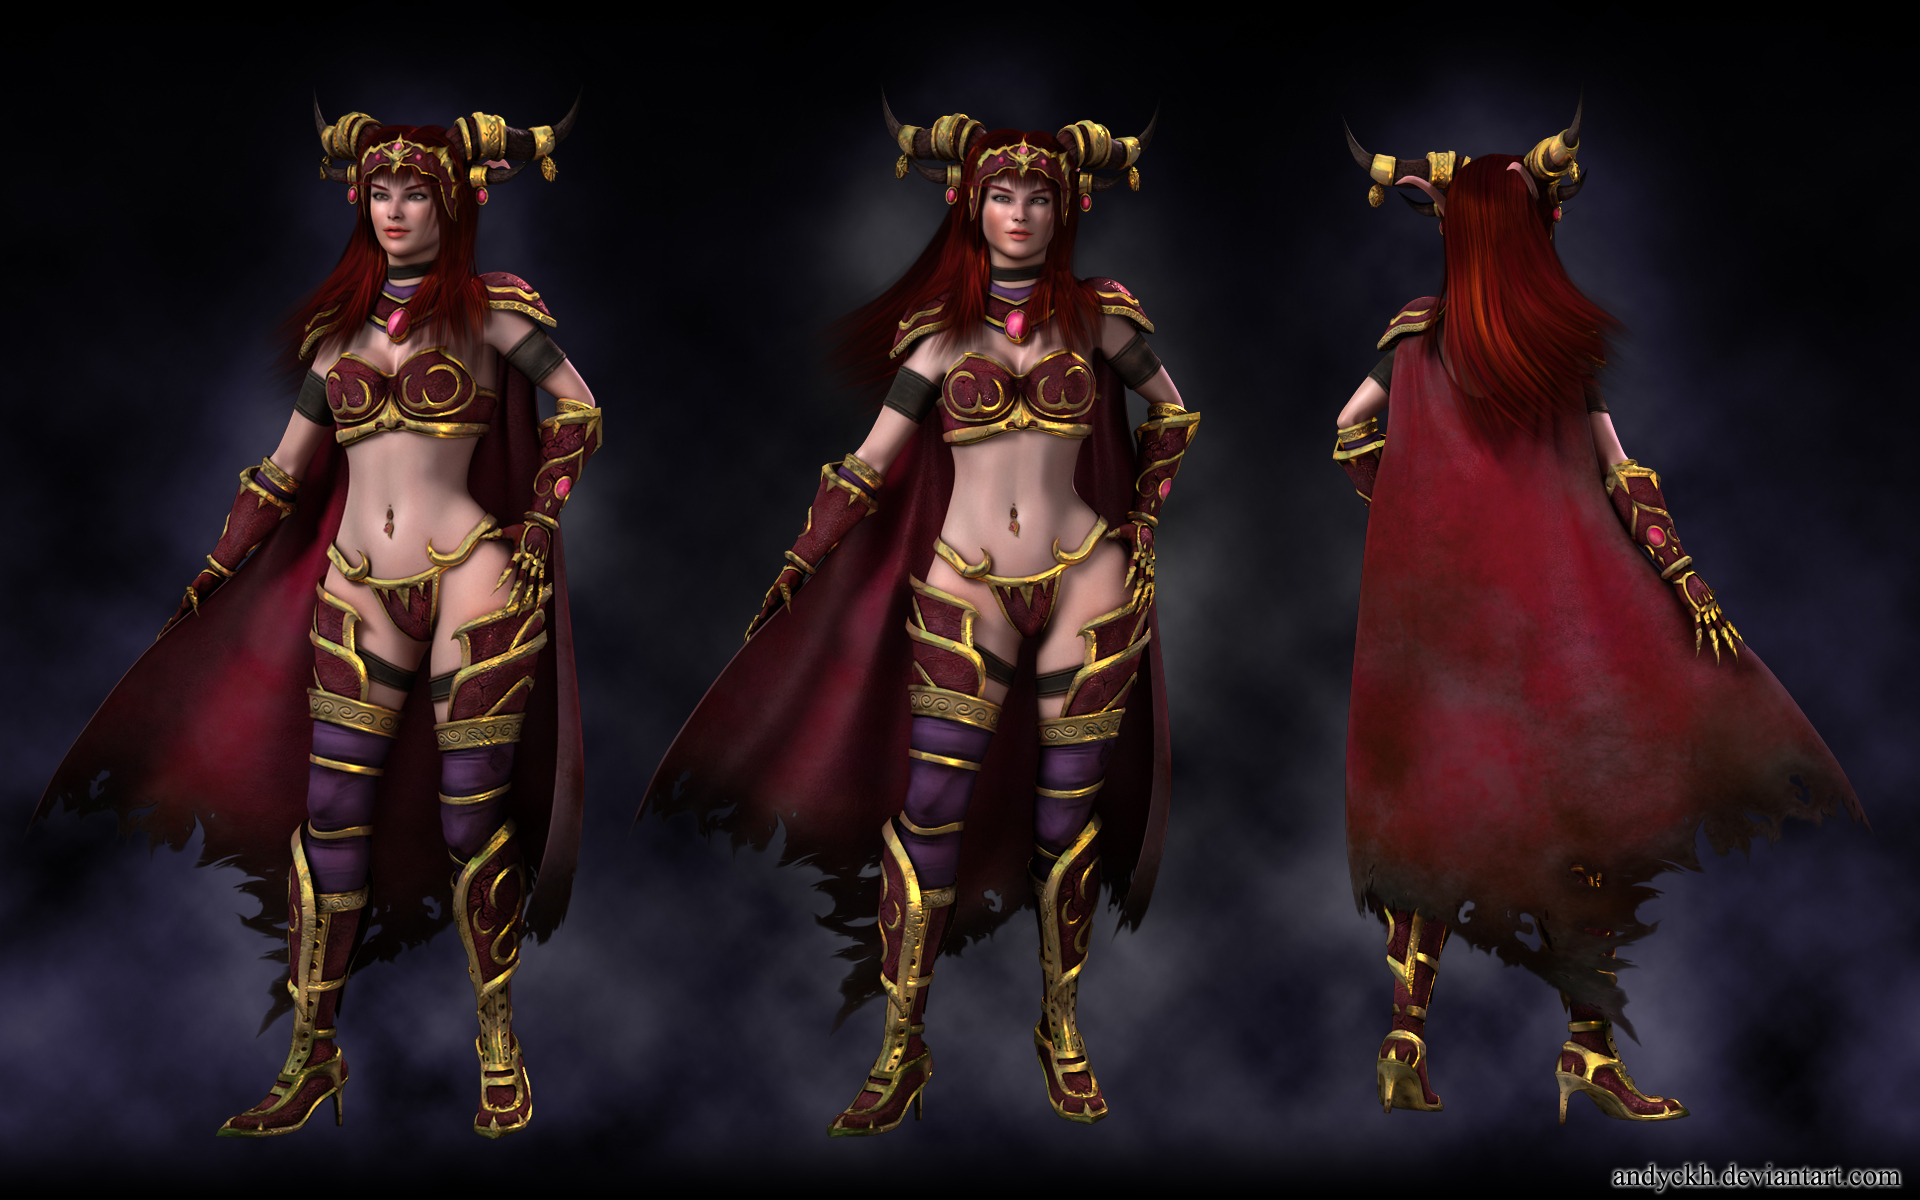 Chonicles of alexstrasza adult uncensored girlfriends